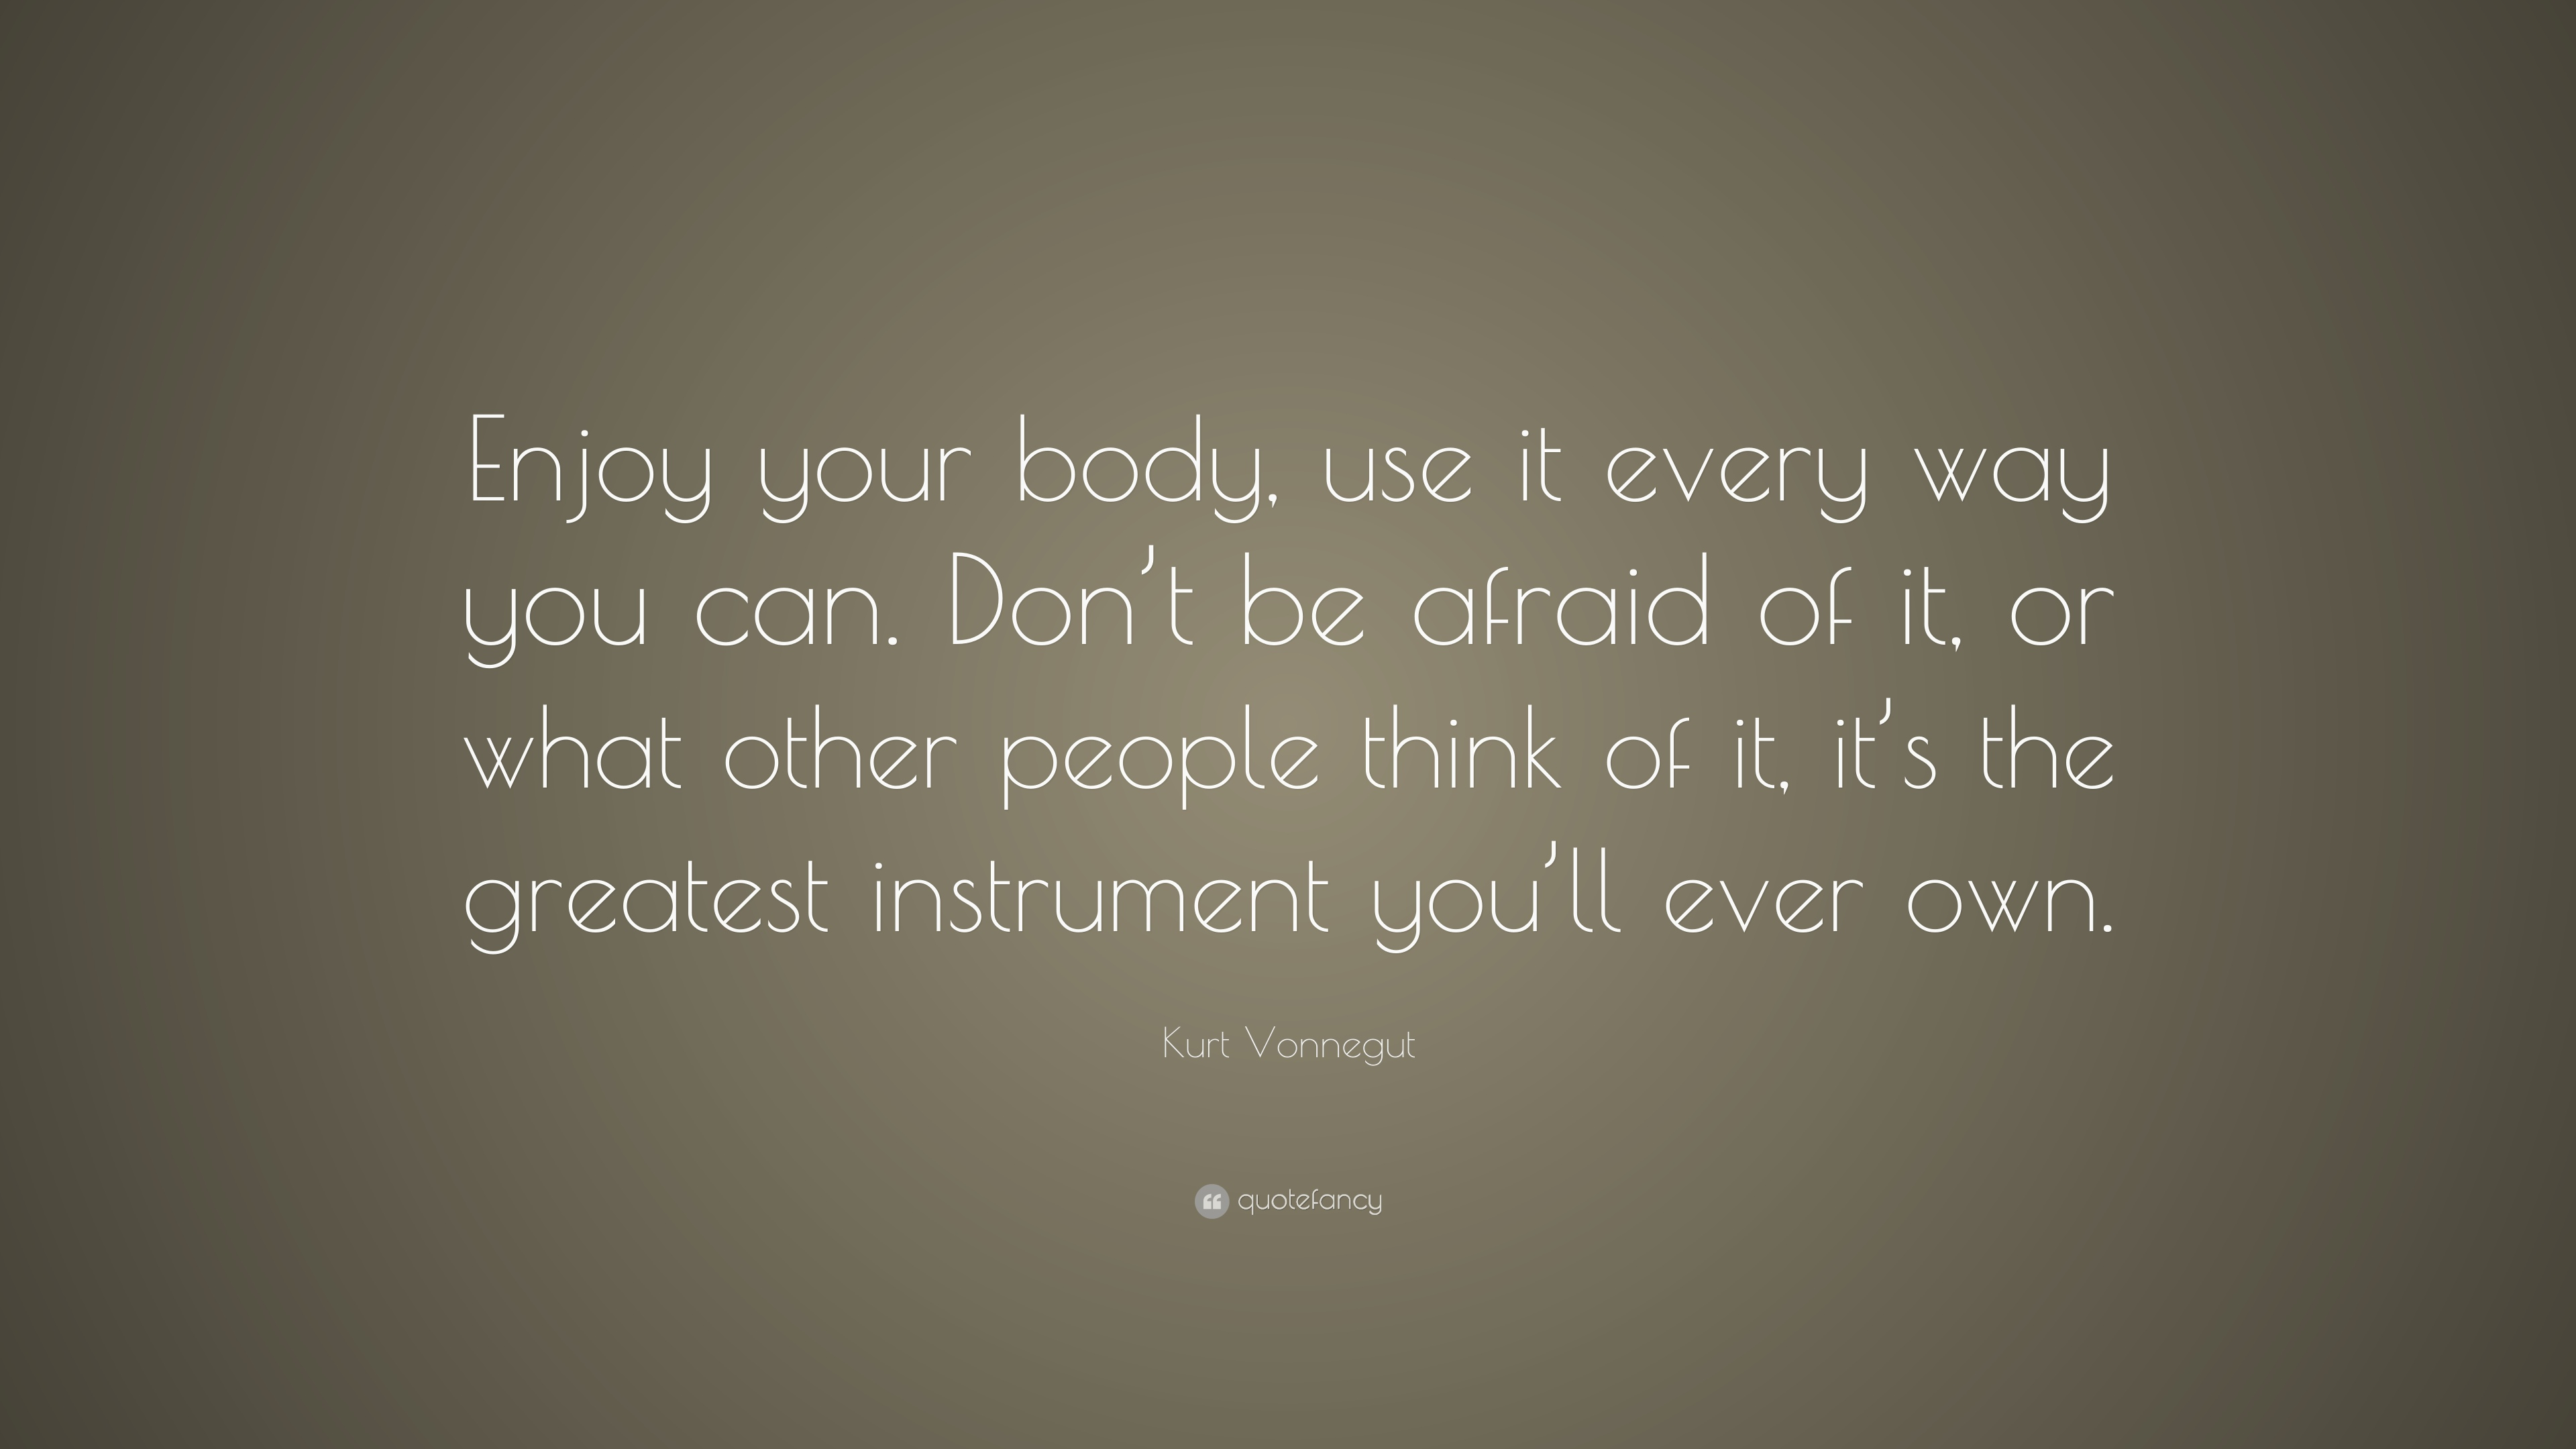 Image result for Love your body quote by Kurt Vonnegut